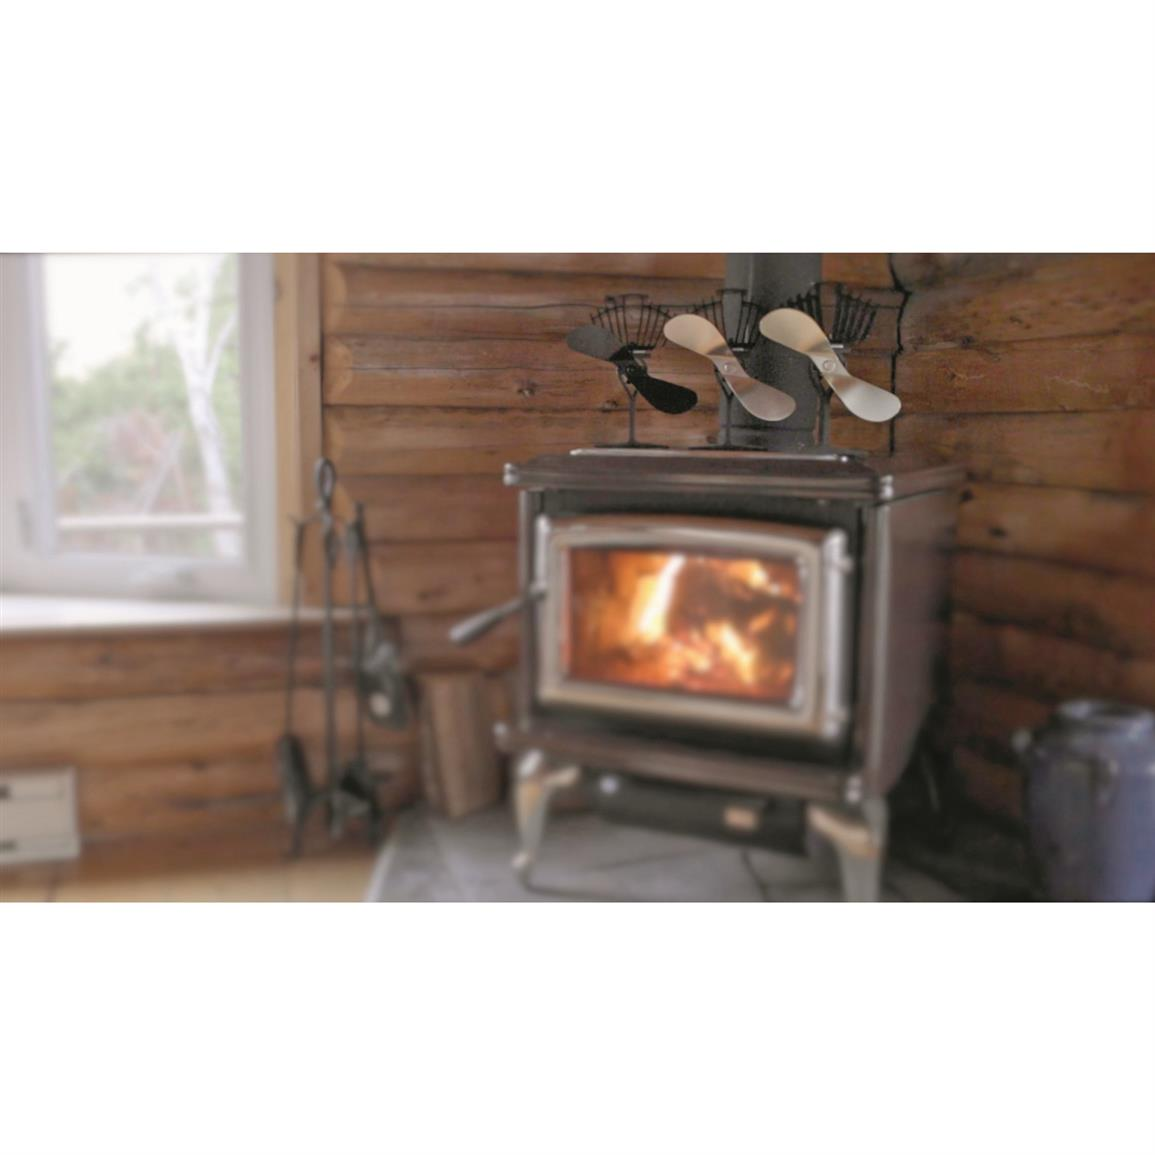 As the surface temperature of your wood stove heats up, the fan will begin  to - Ecofan AirMax Heat-Powered Wood Stove Fan - 216268, Accessories At